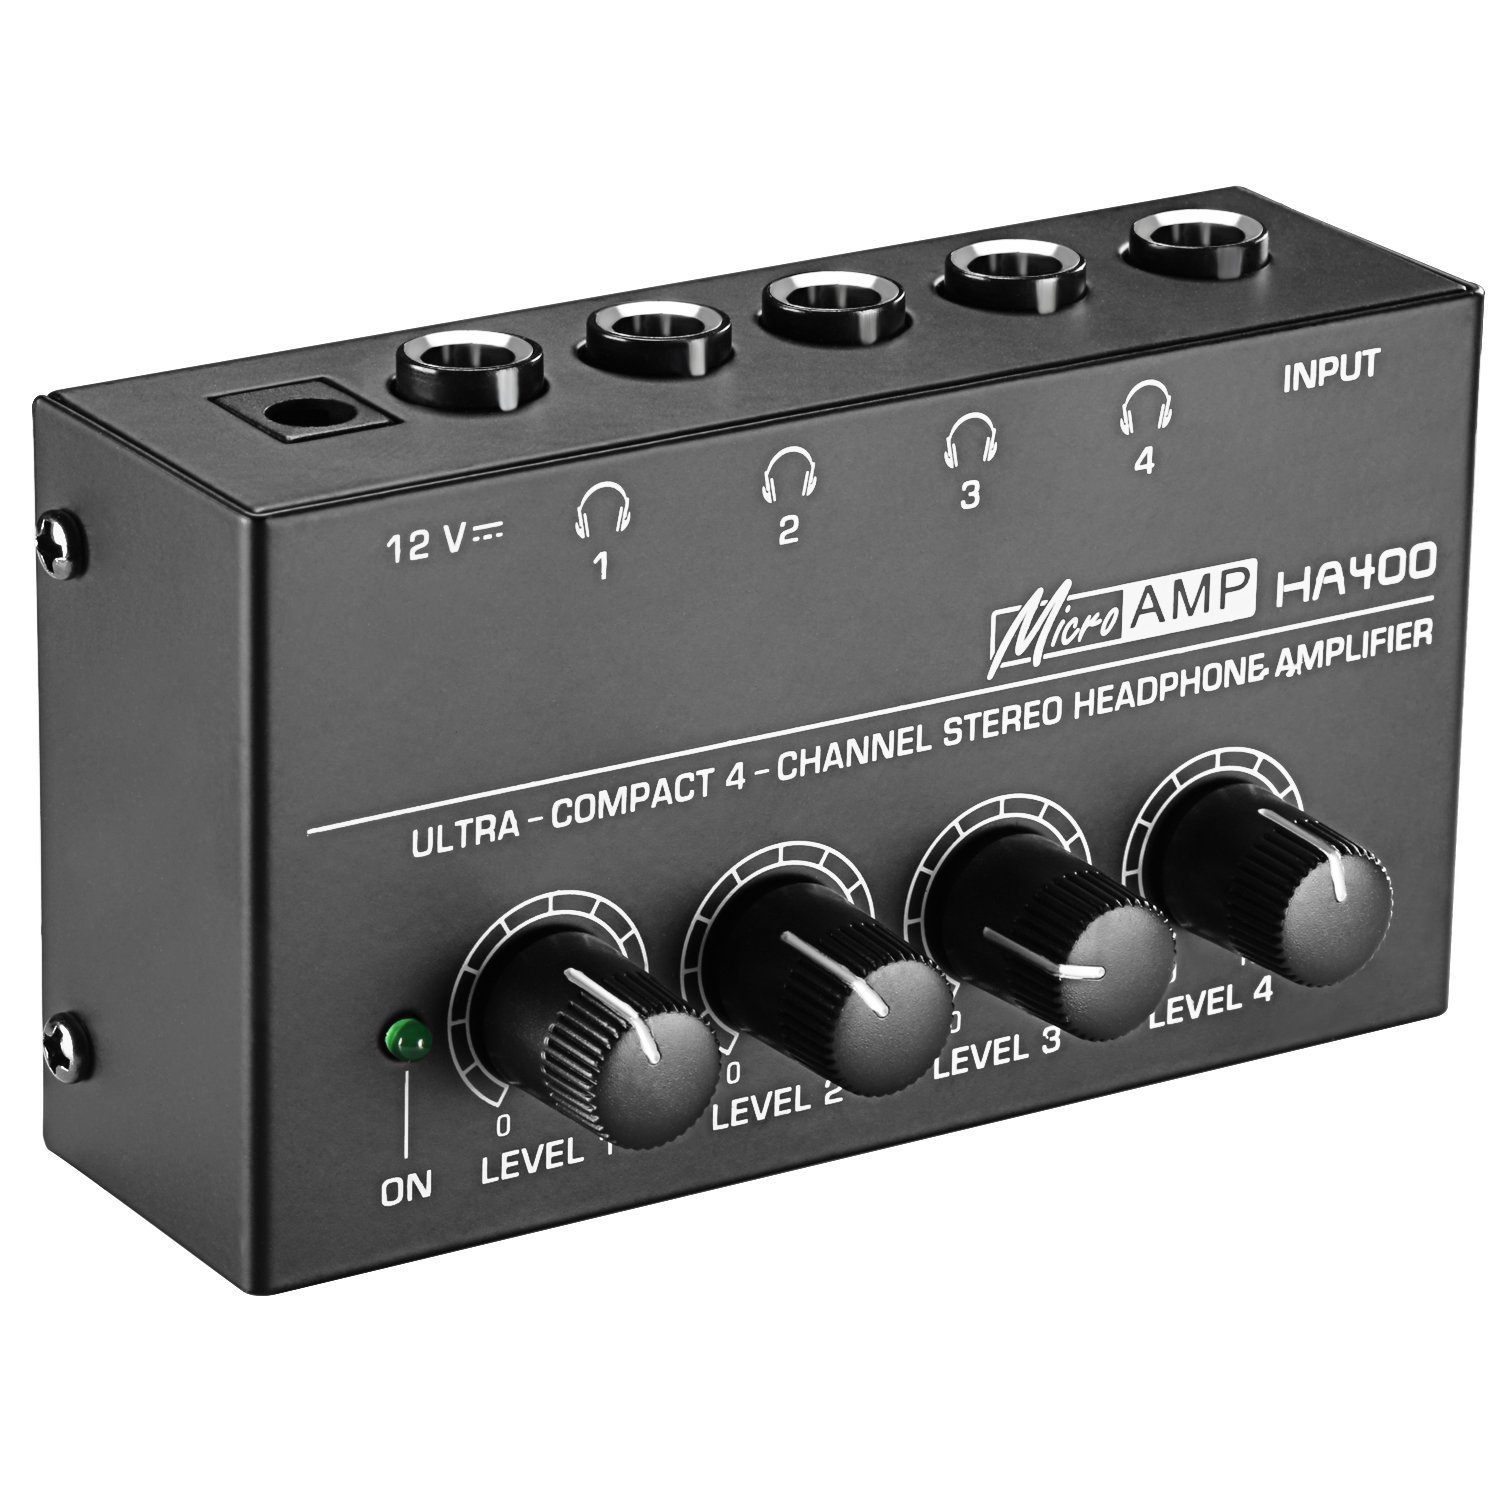 Neewer Super Compact 4-Channel Stereo Headphone Amplifier with DC 12V Power Adapter for Sound Reinforcement, Studio, Stage, Choir, Personal Recording, Features Ultra Low Noise, Premium Sonic Quality by Neewer (Image #1)